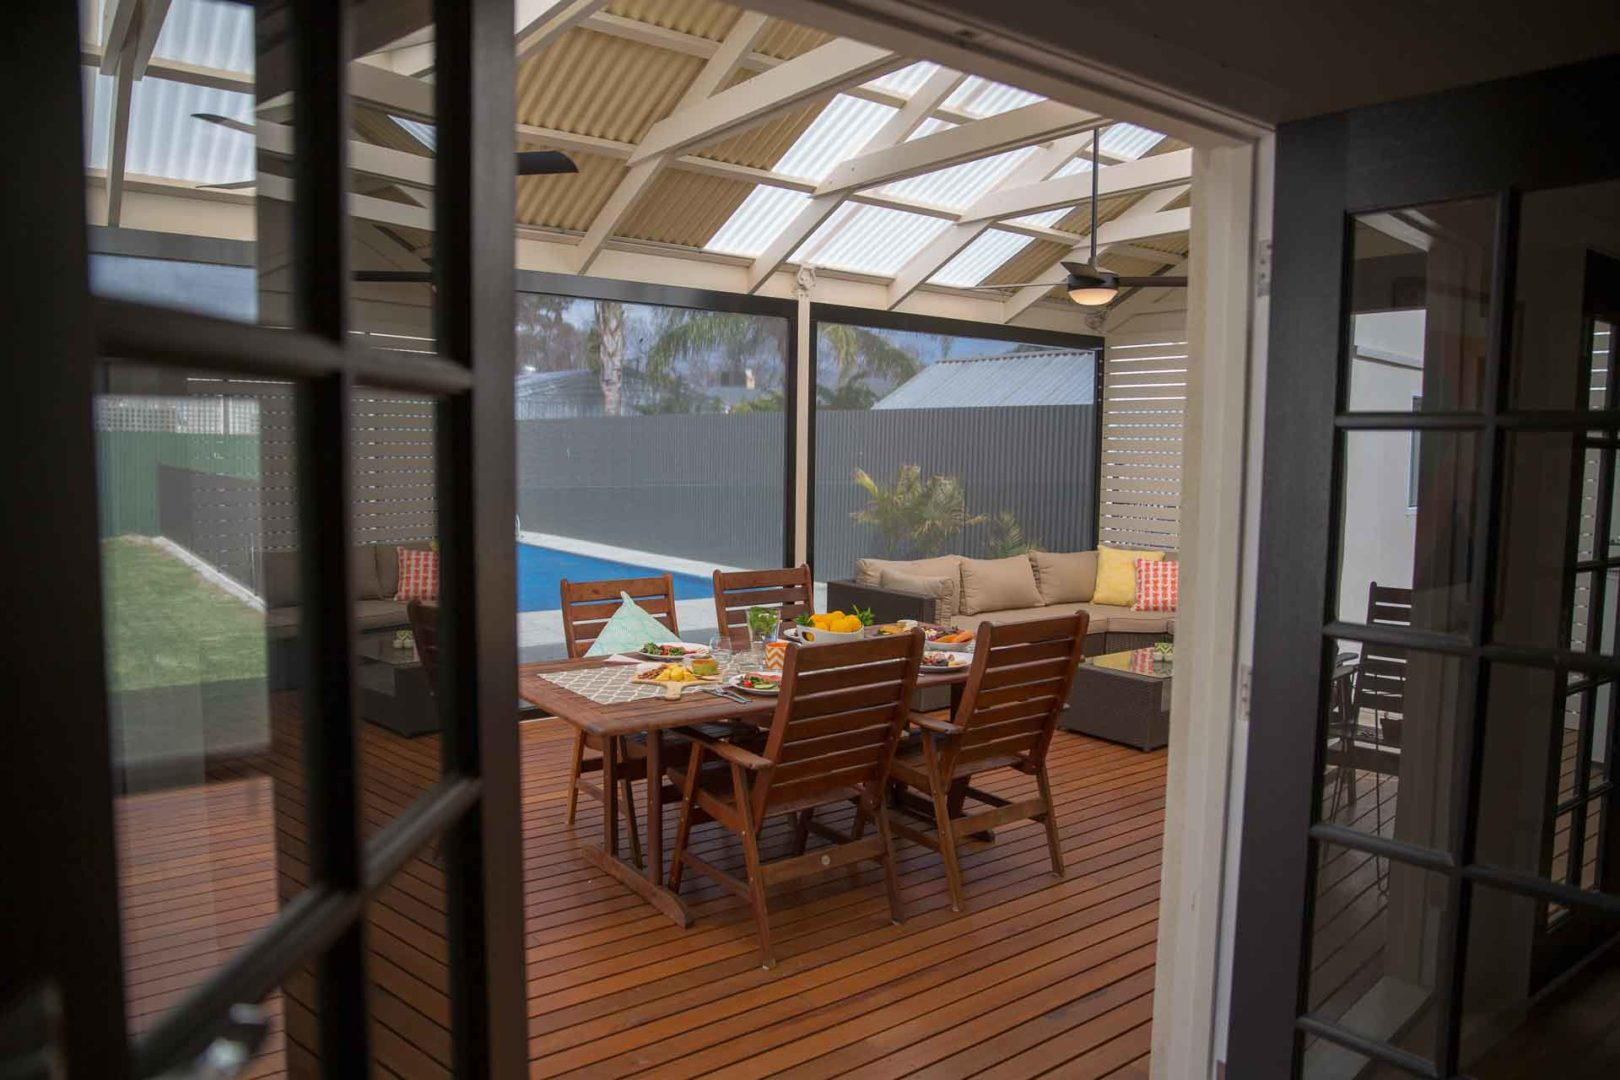 How to properly care for your timber deck - Staining vs Oiling: Whats best for my Timber deck, Australian Outdoor Living.